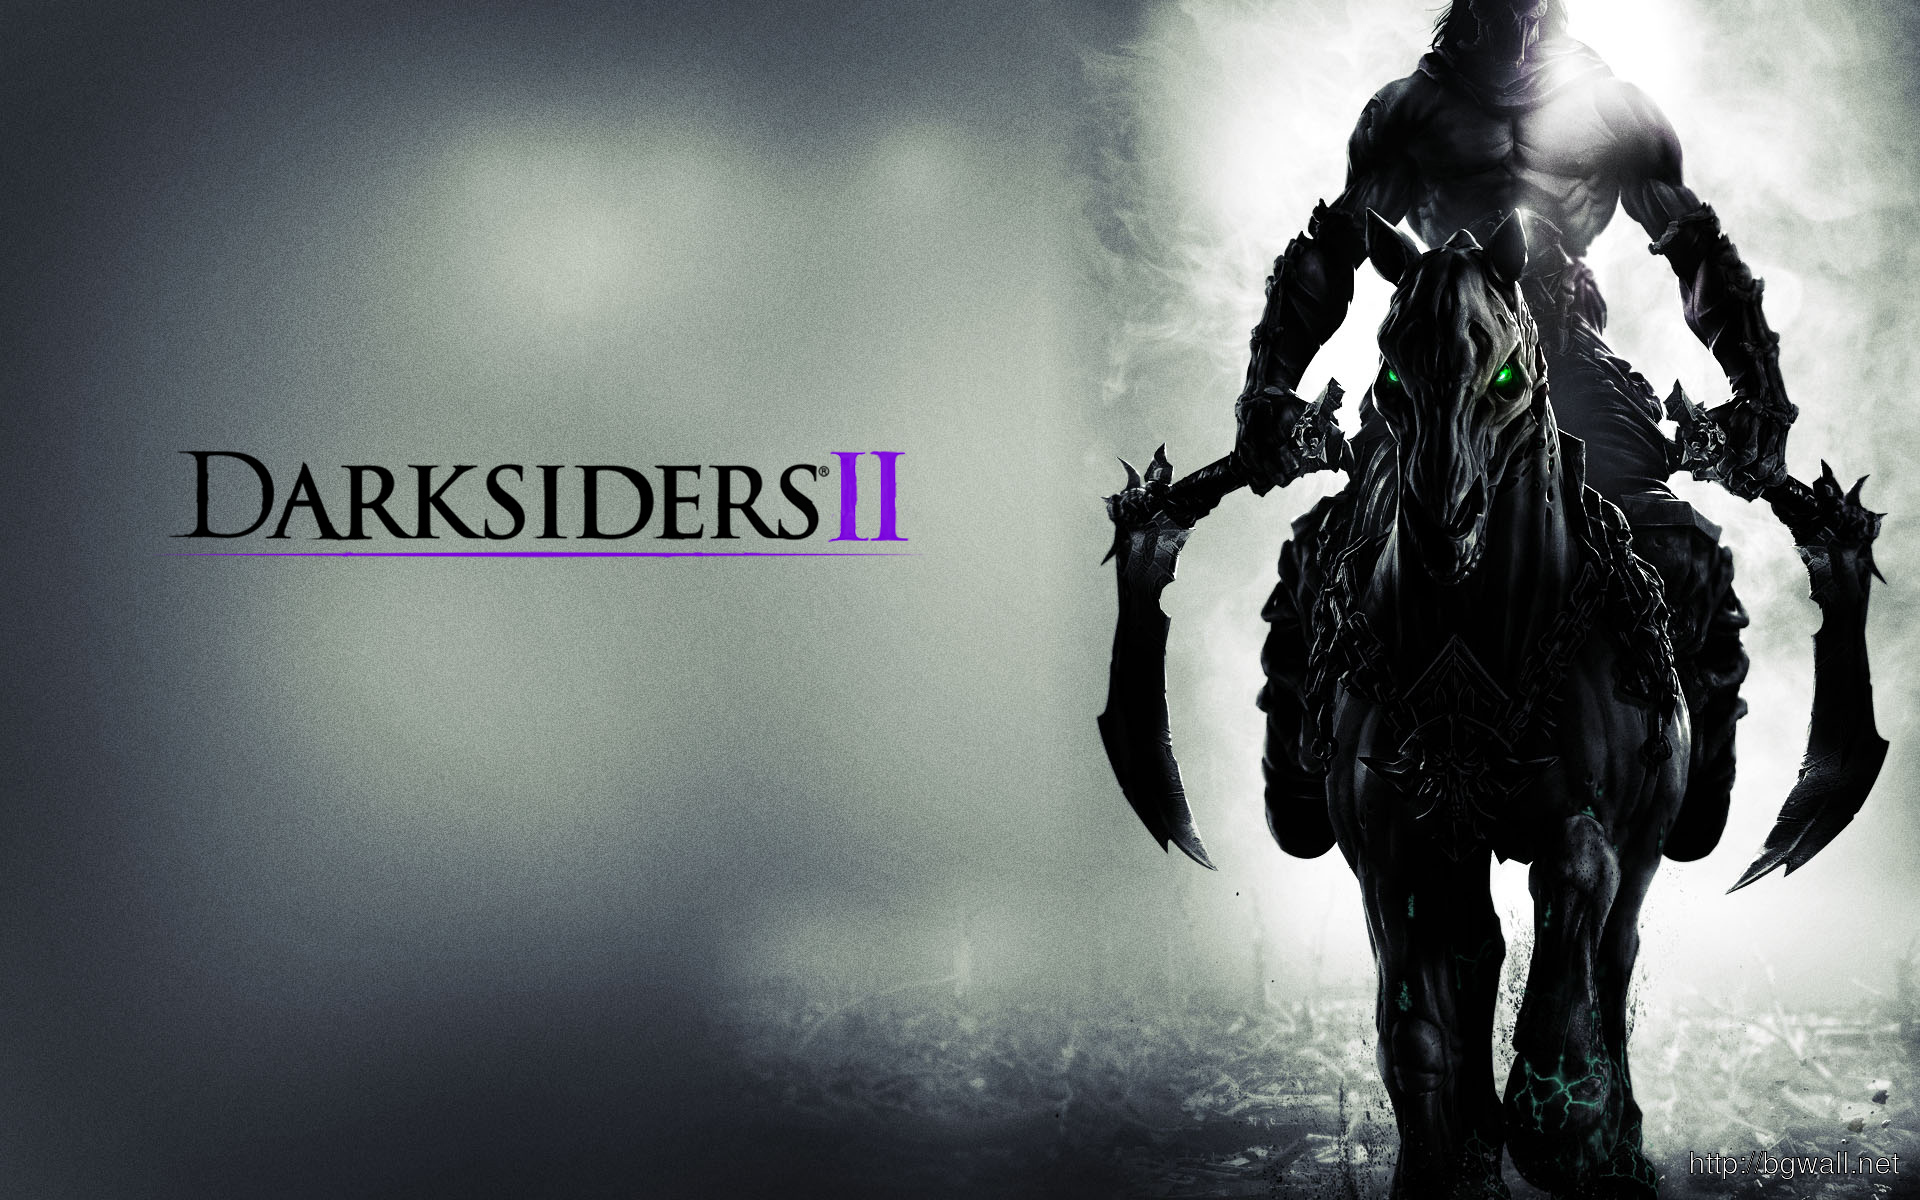 Darksiders 2 Ps3 Wallpapers Full Size